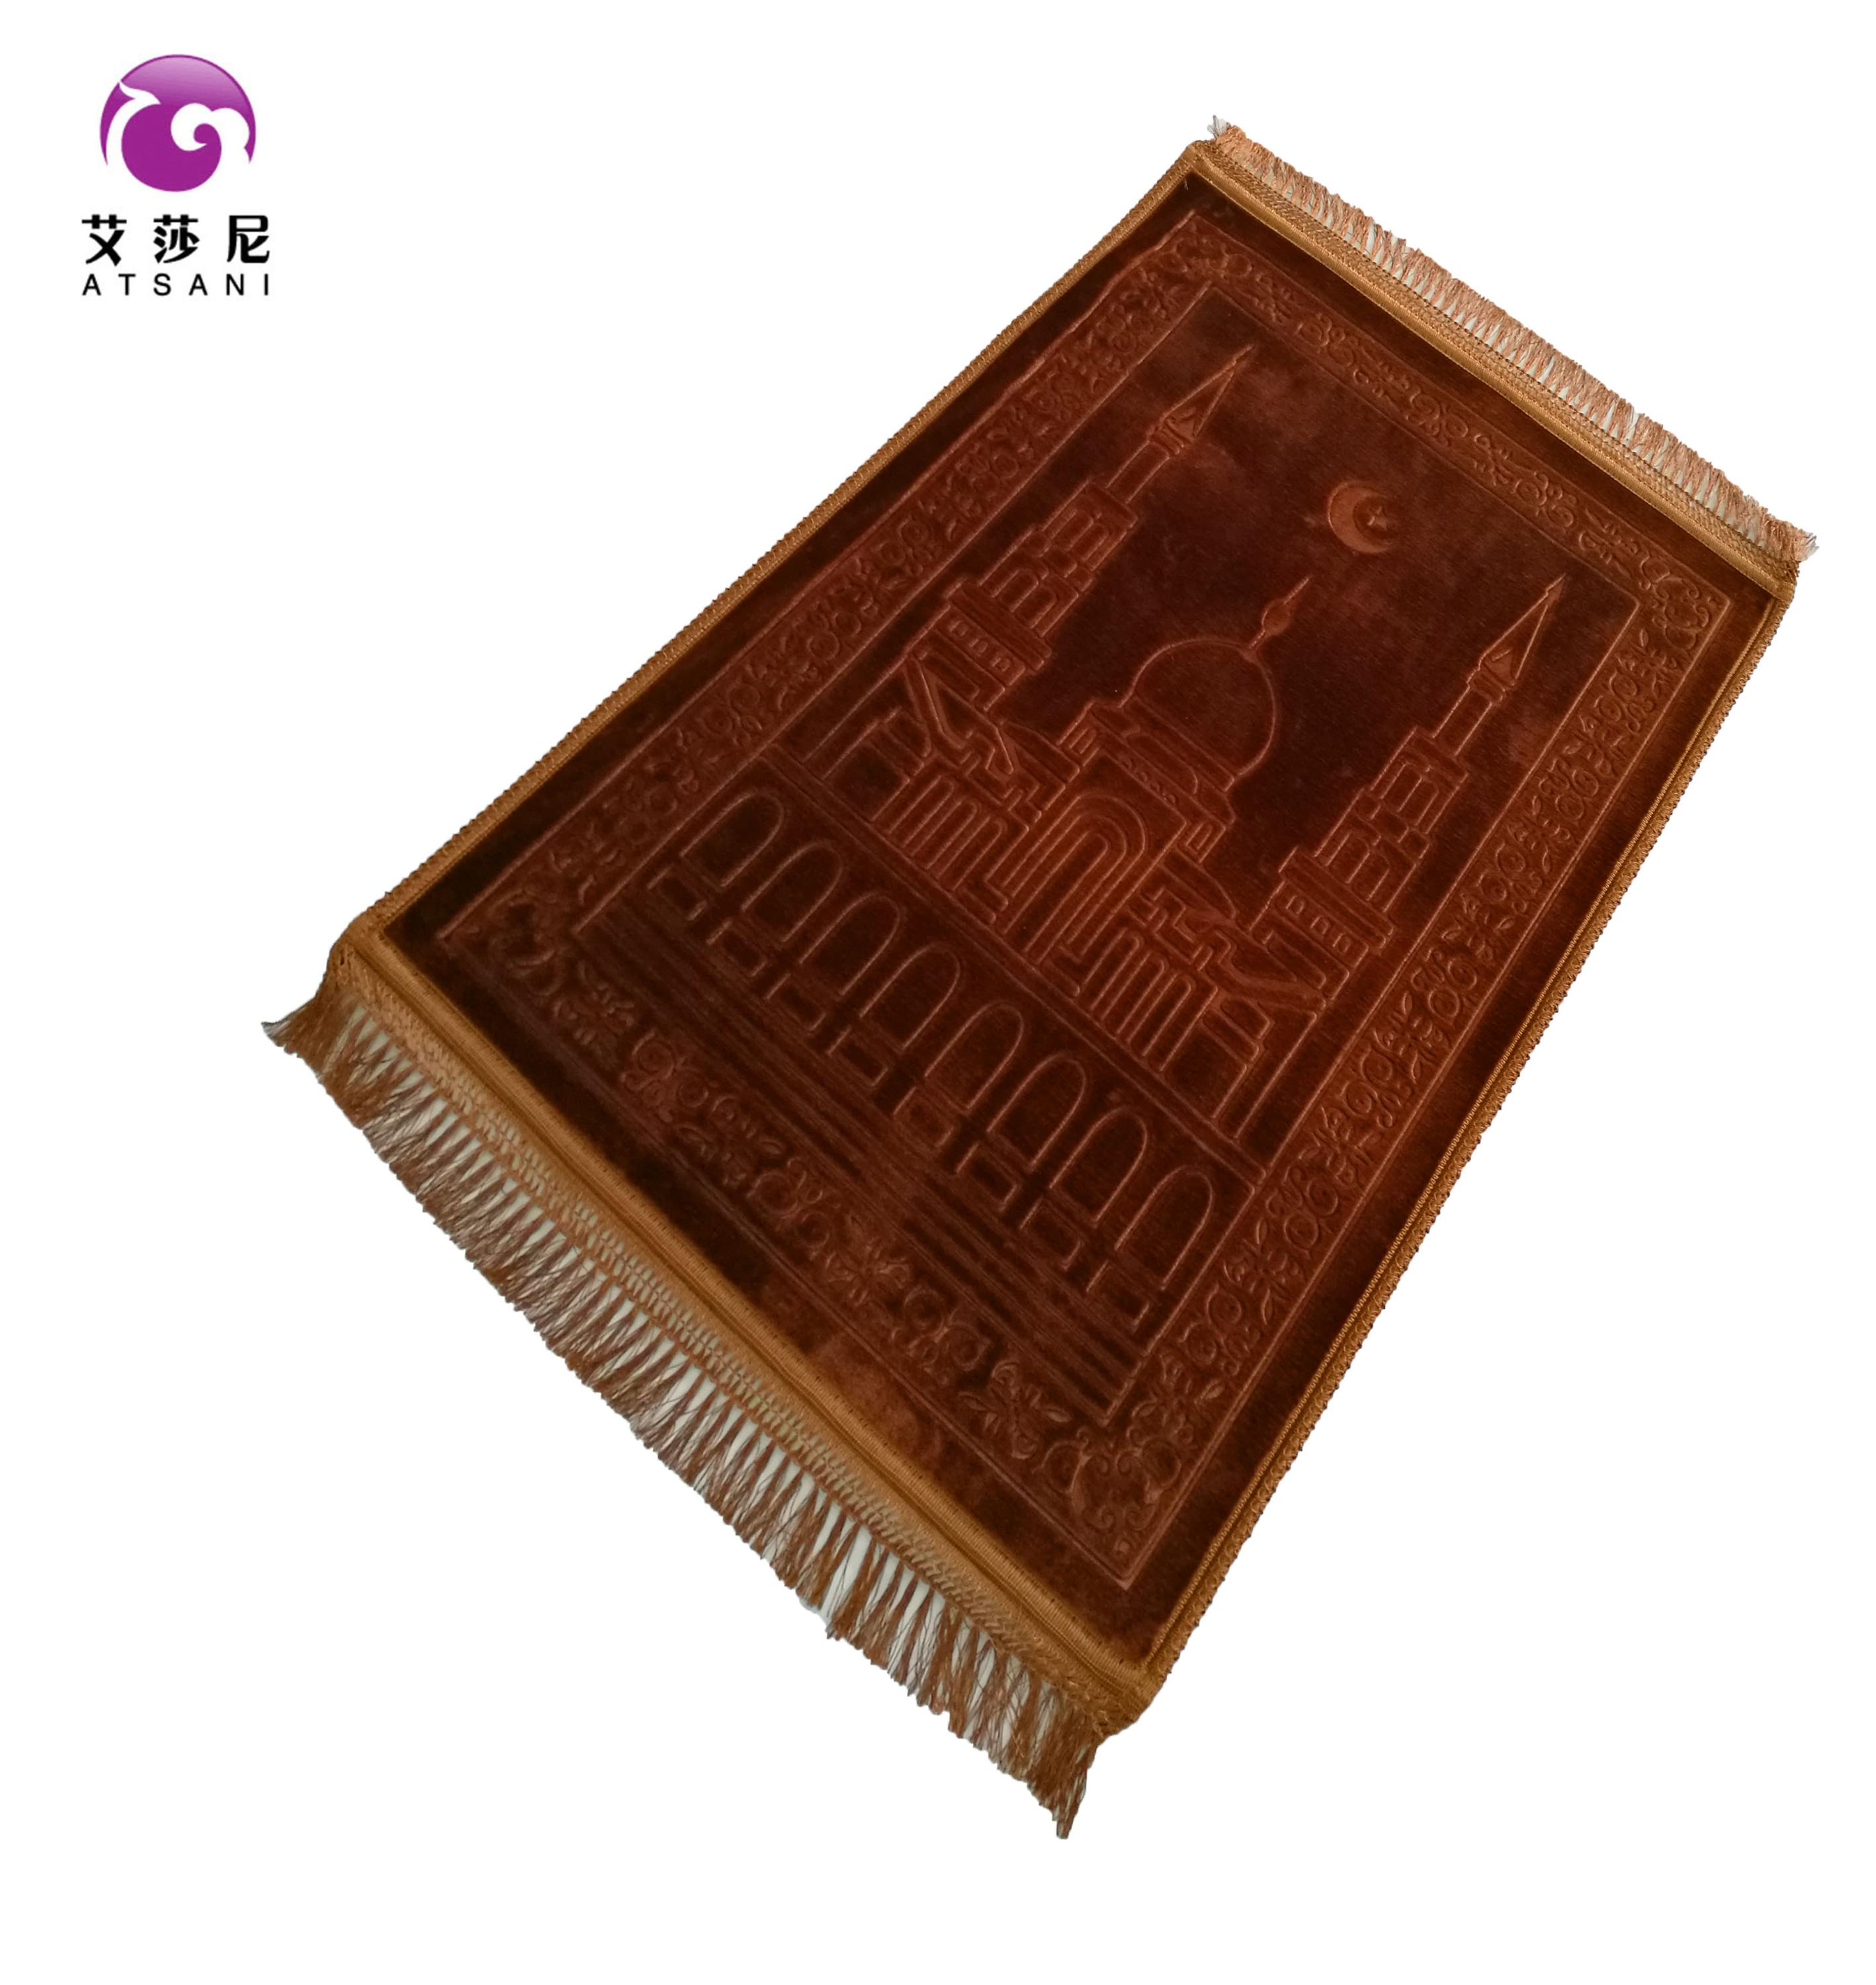 turkey mosque foldable kilim sejadah prayer mat